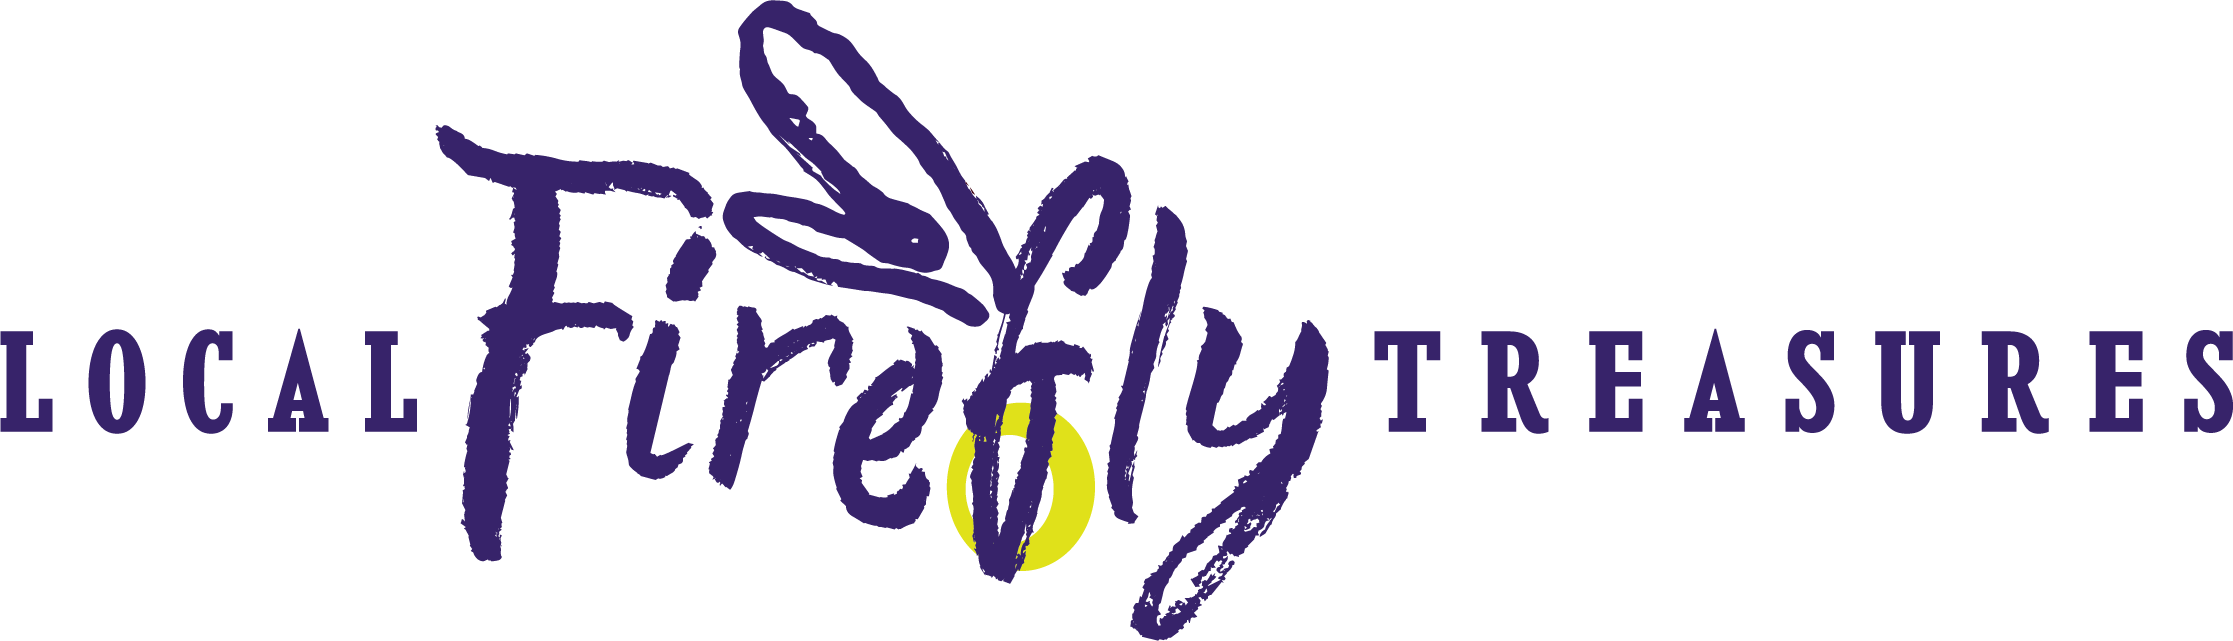 Firefly Local Treasures Logo